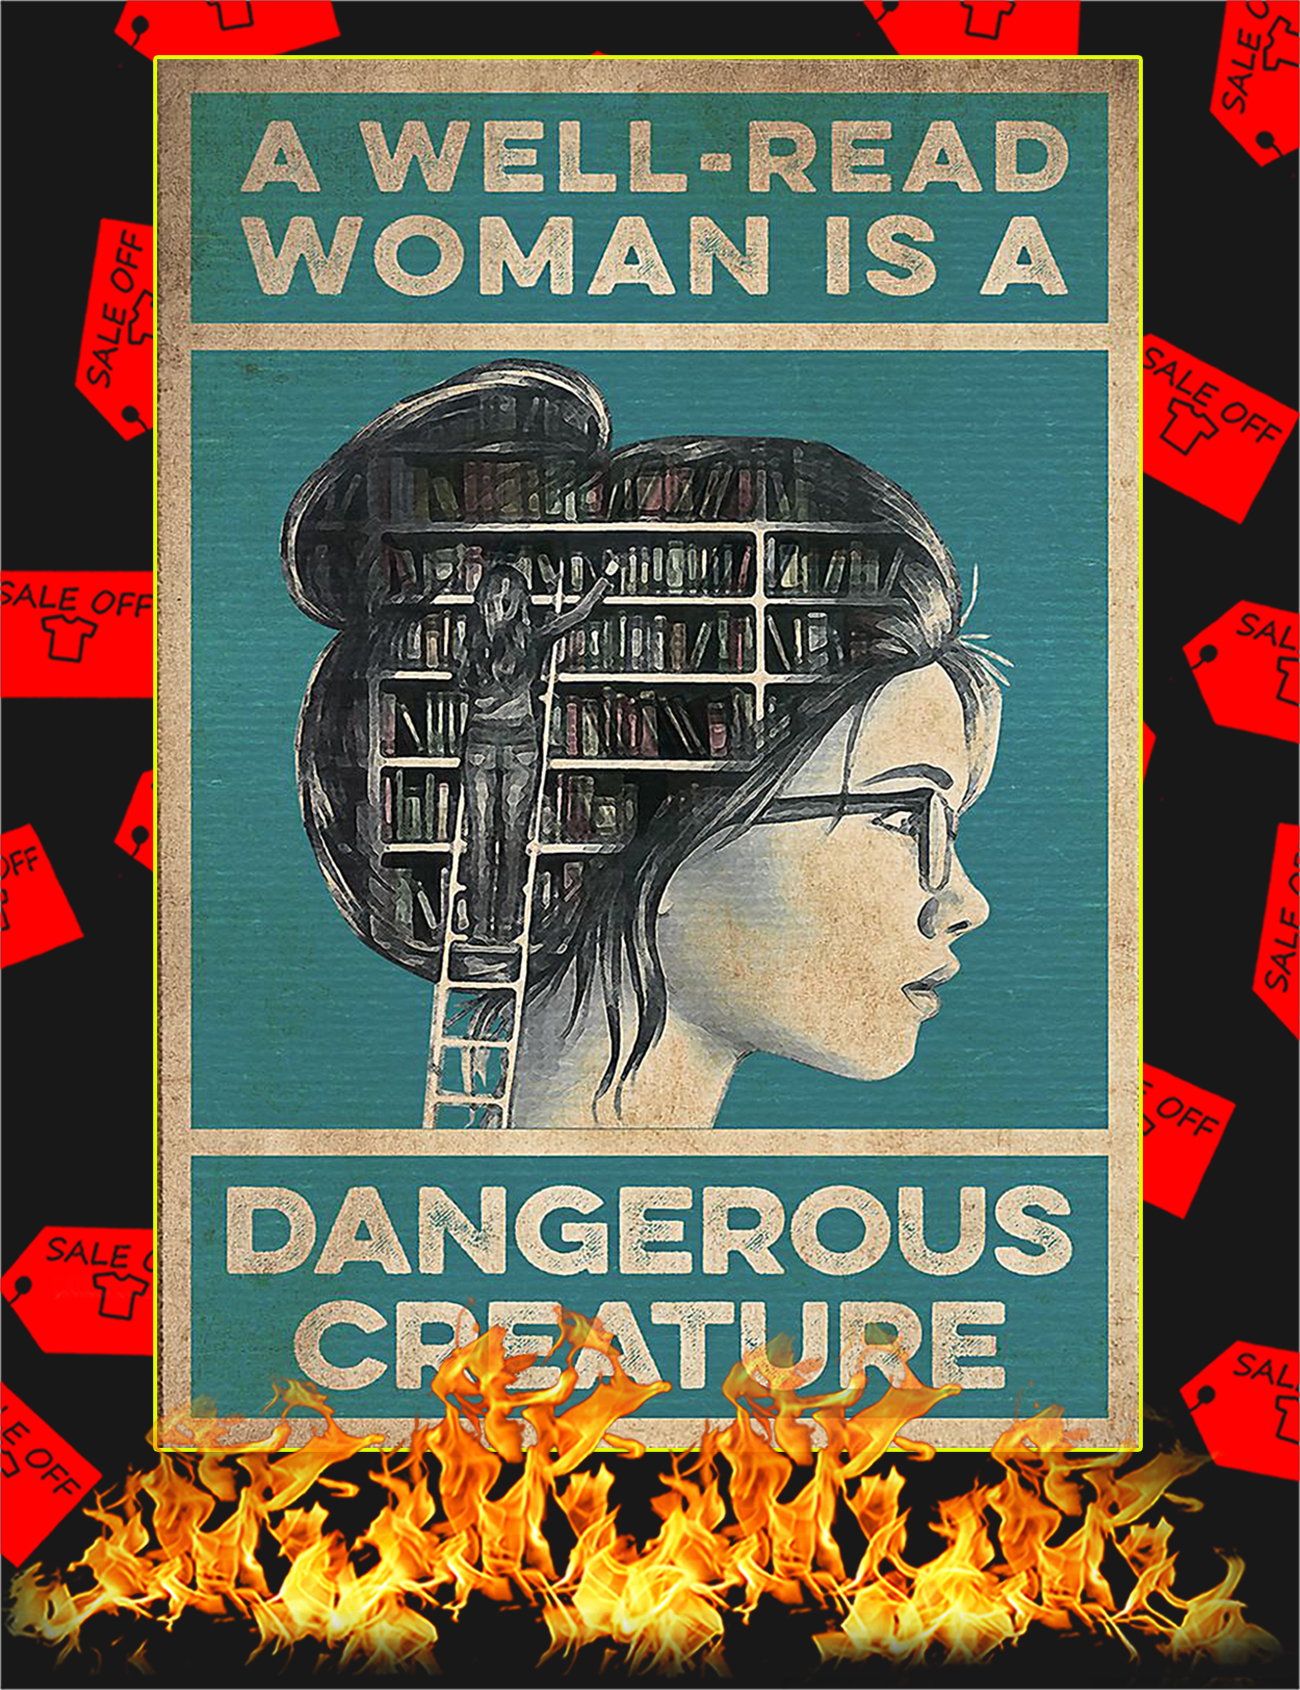 A well-read woman is a dangerous creature poster - A1